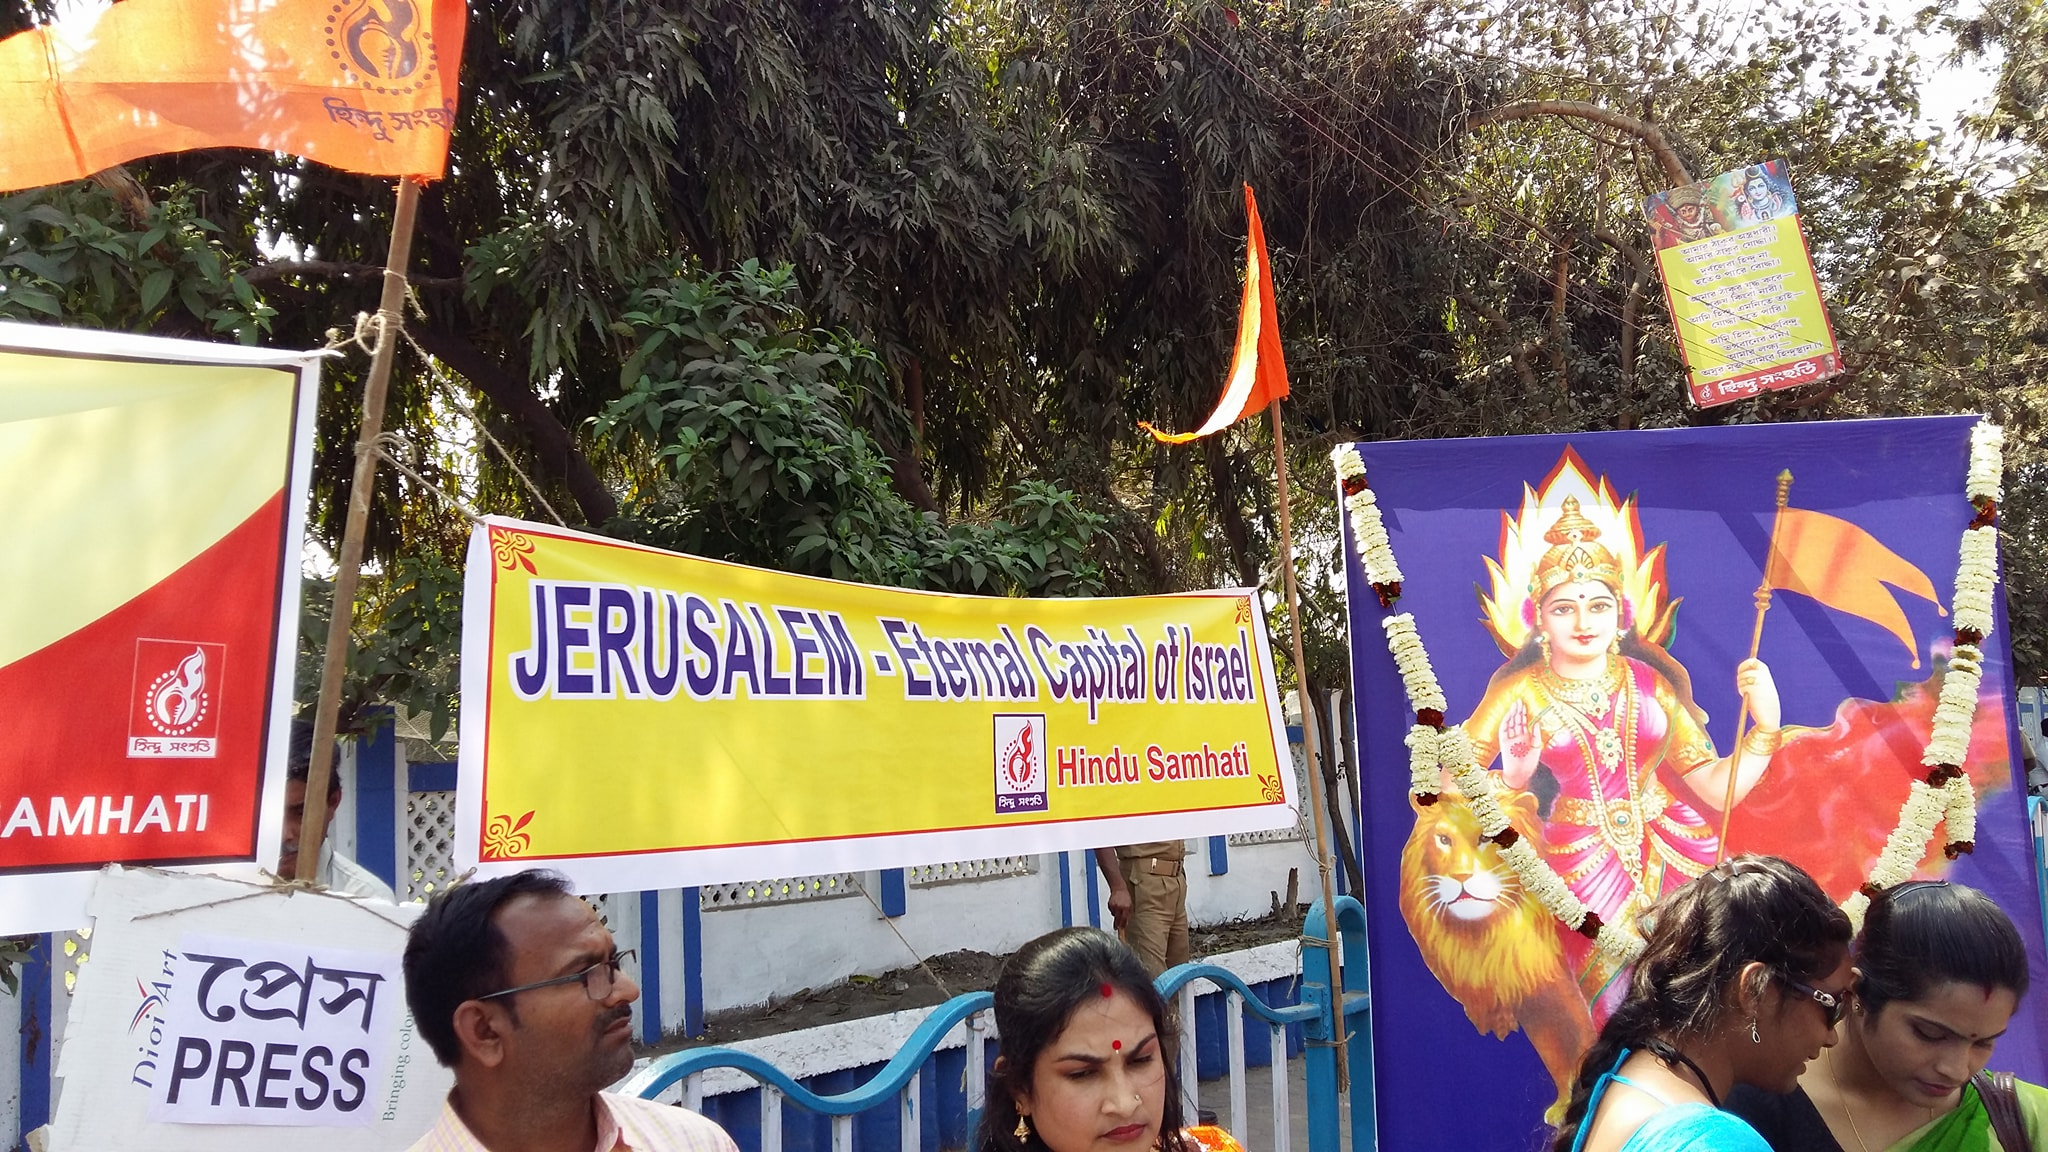 70,000 Strong Pro-Israel Rally Held in India on February 14, 2018